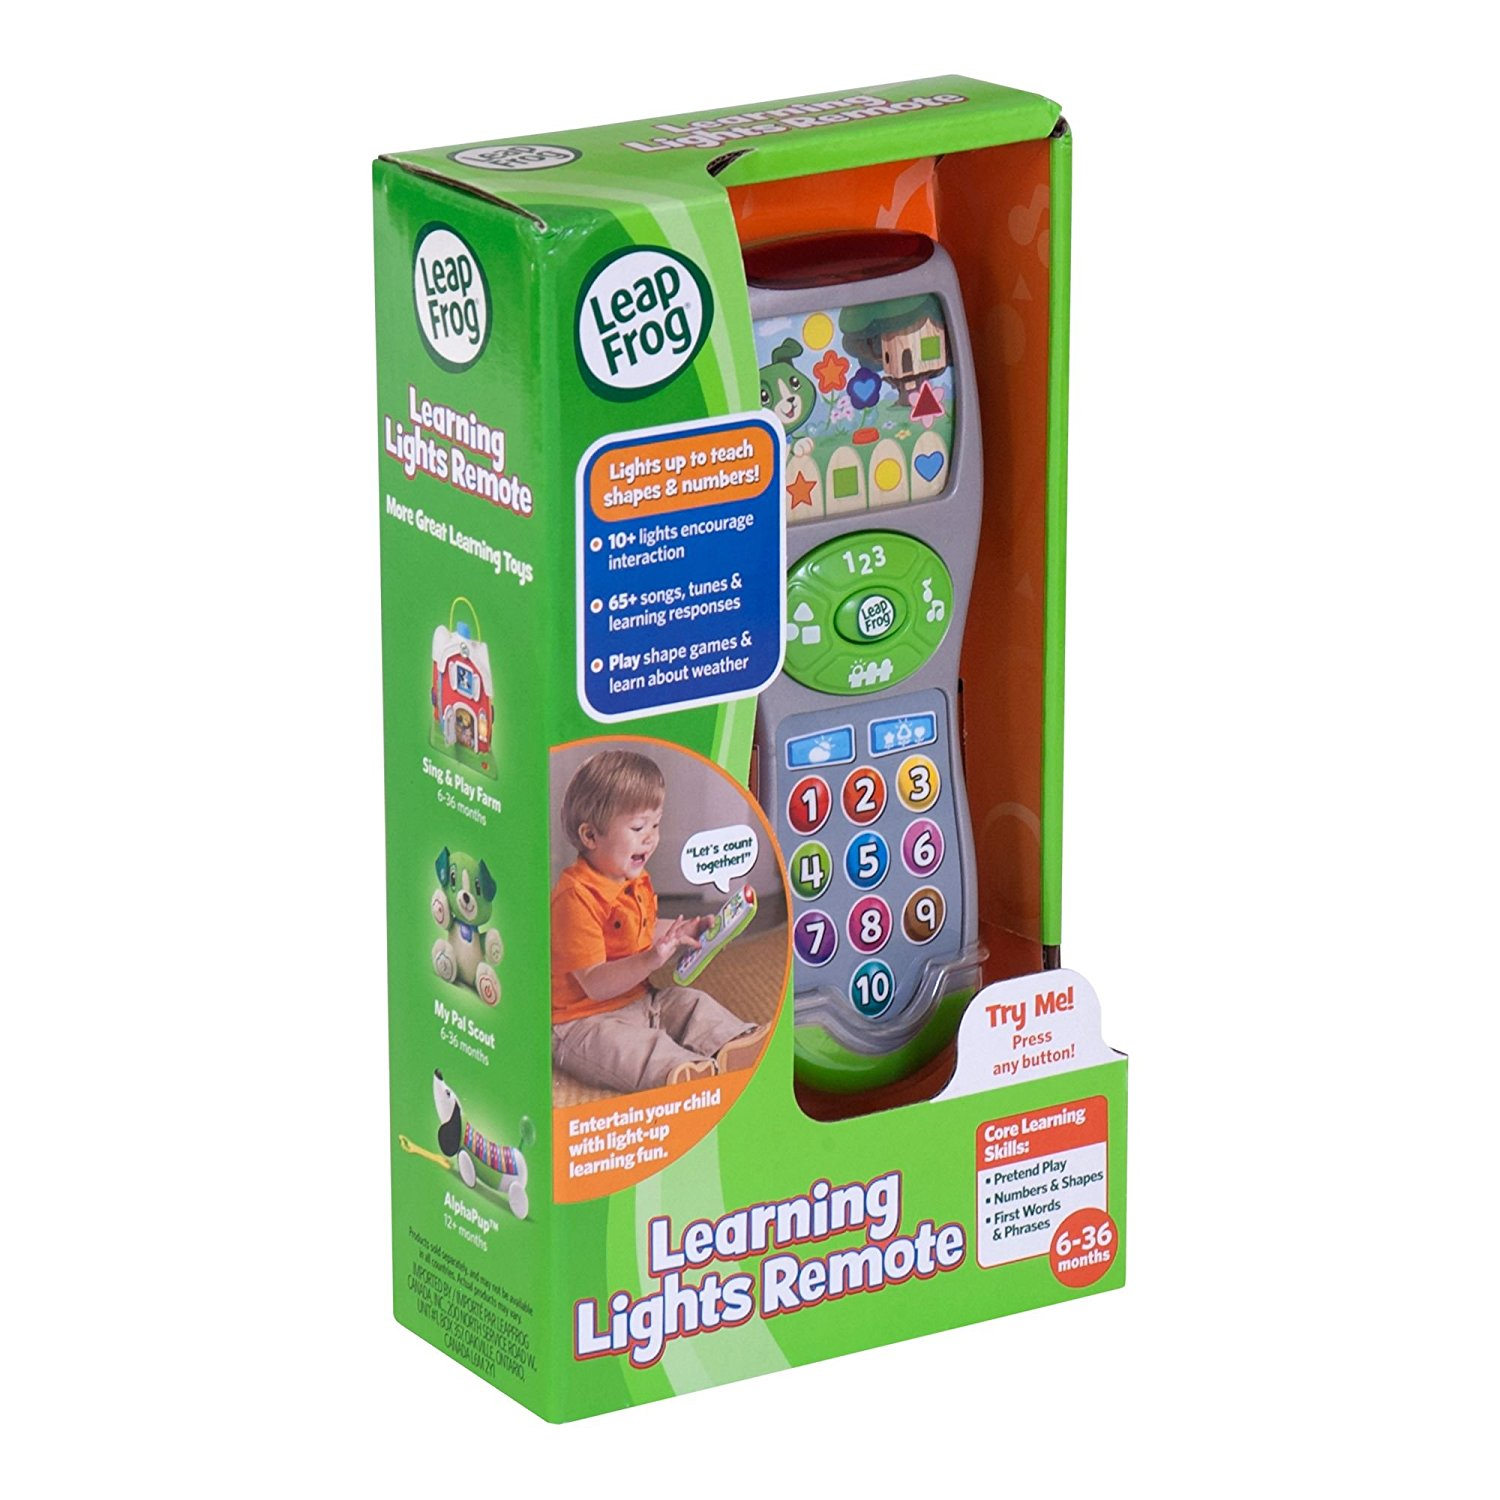 LeapFrog Light up Remote